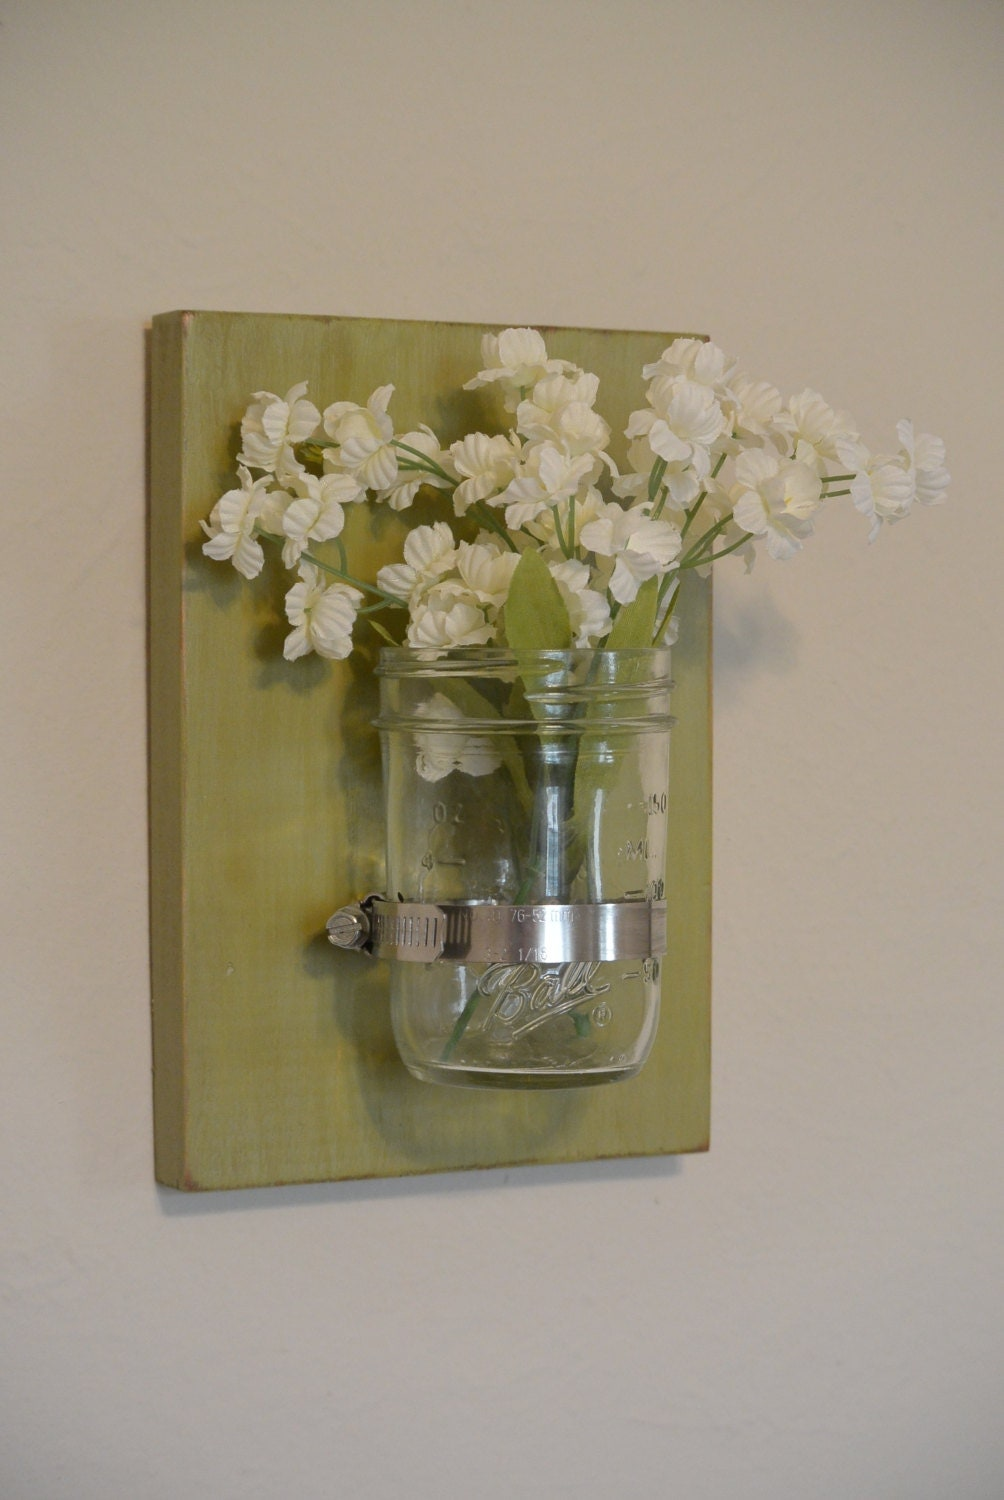 Wall Sconces Etsy : Request a custom order and have something made just for you.